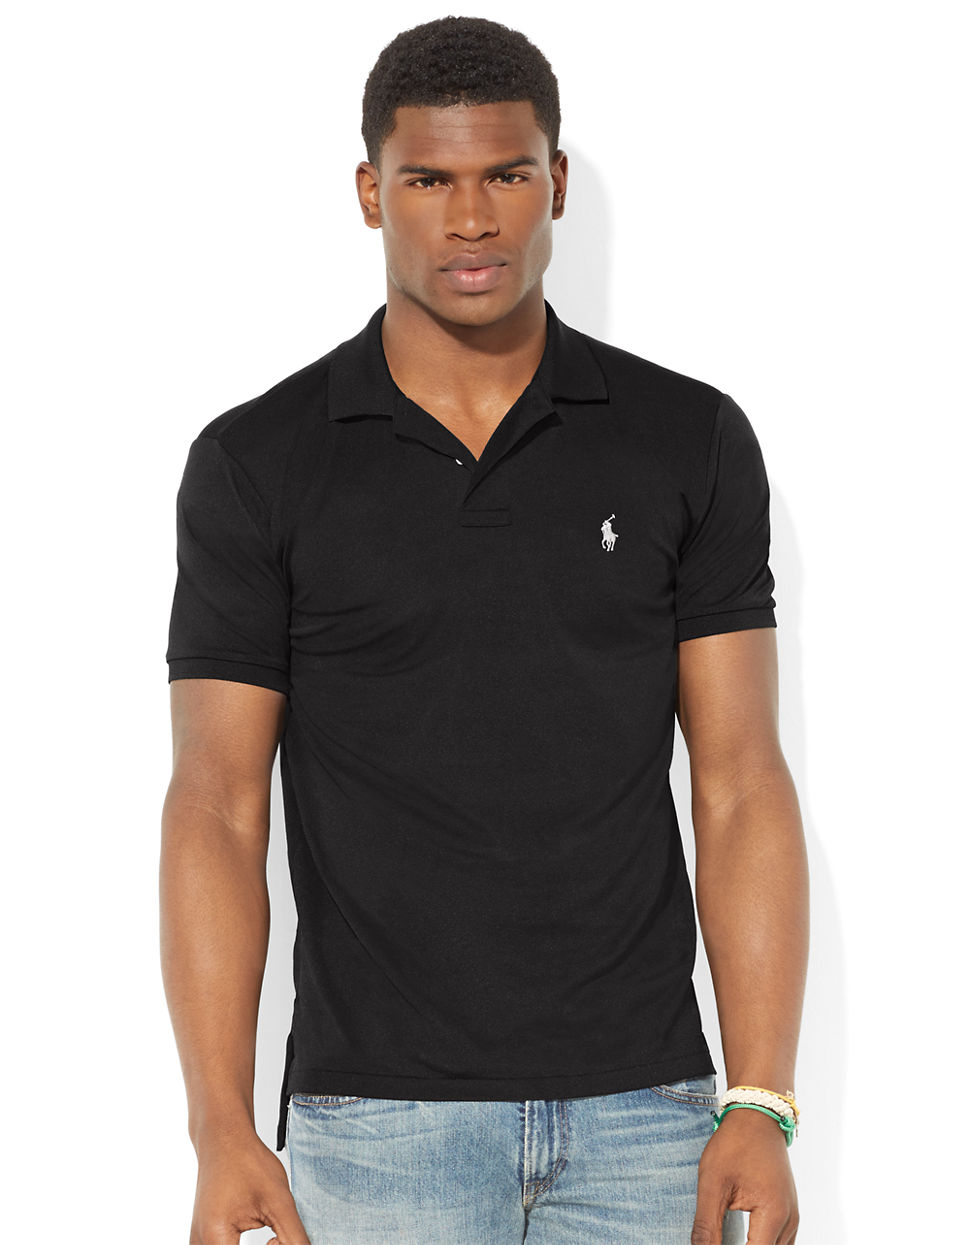 polo ralph lauren performance mesh polo shirt in black for men lyst. Black Bedroom Furniture Sets. Home Design Ideas